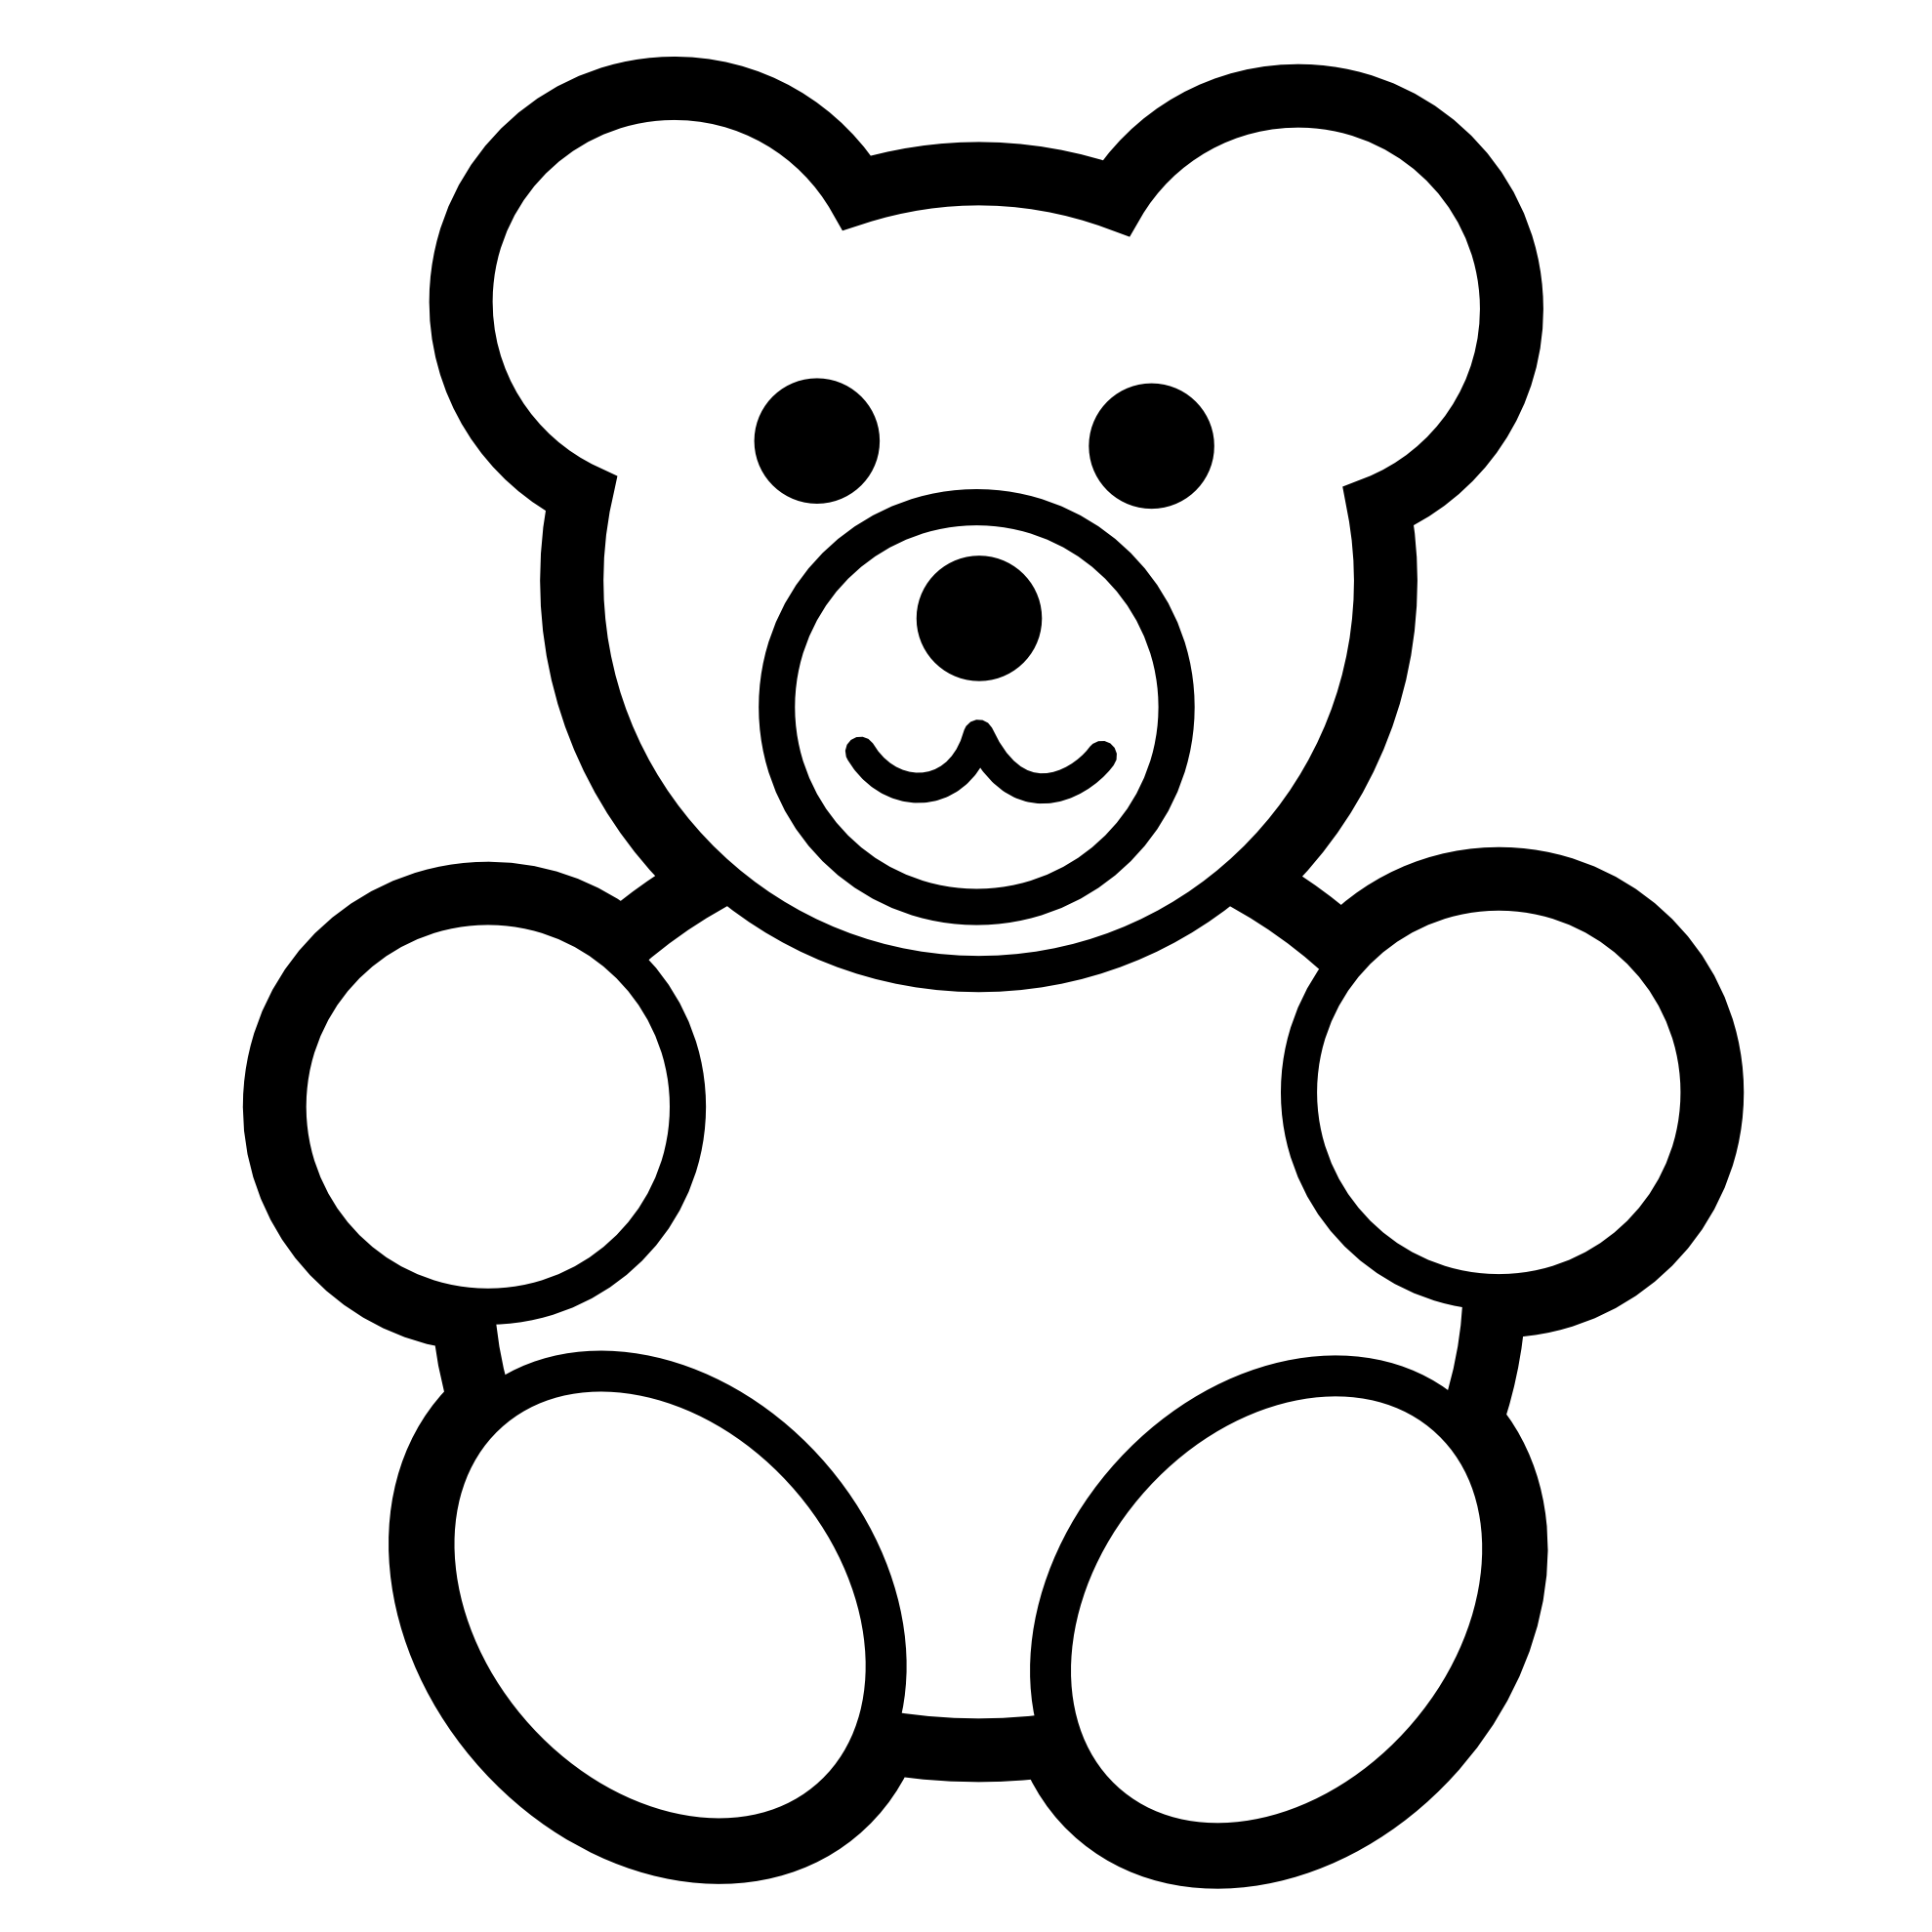 clipart animals black and white clipart panda free clipart images